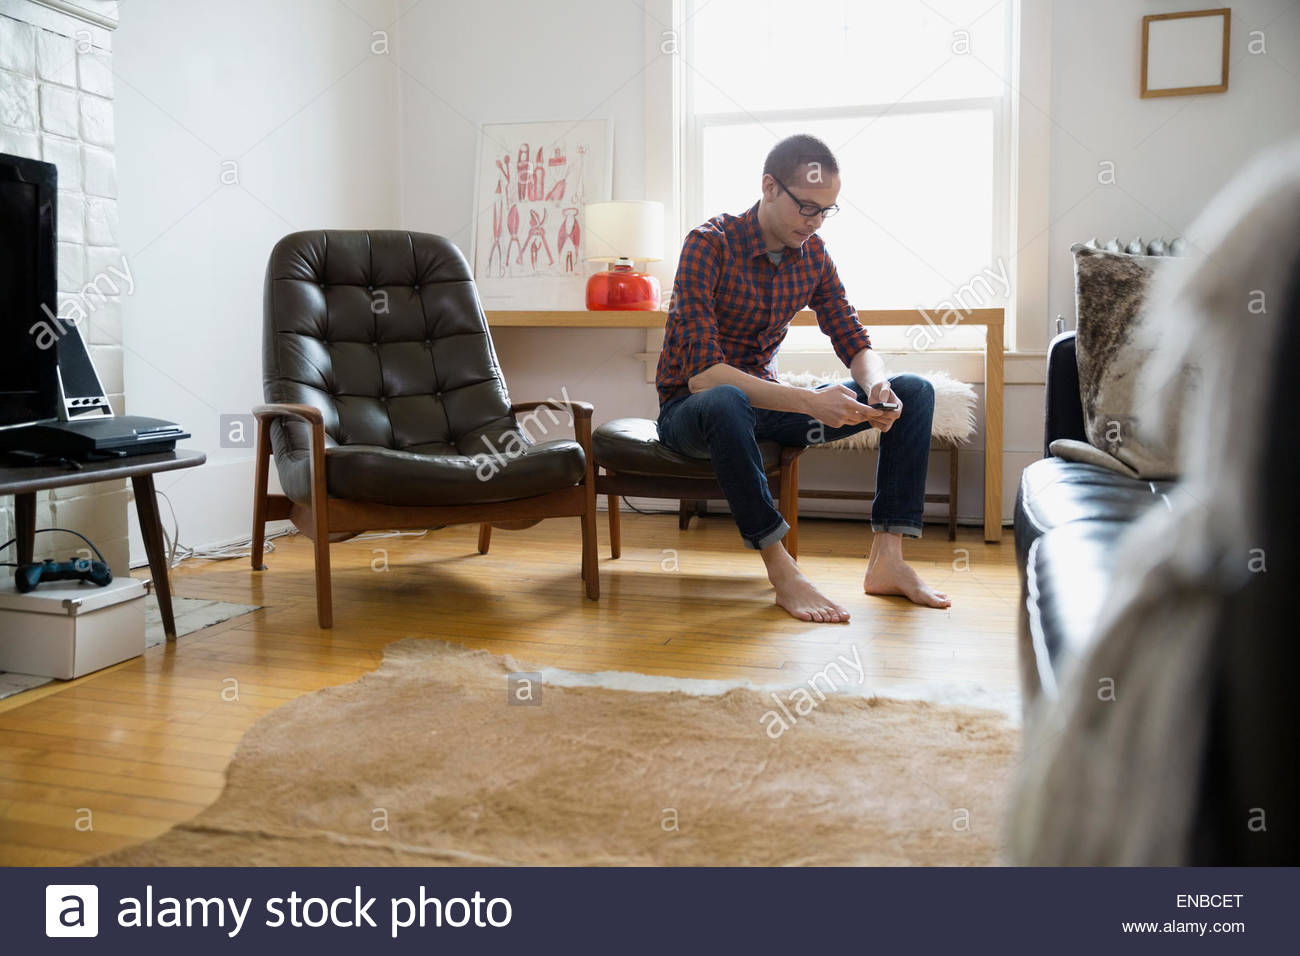 Barefoot man texting with cell phone living room - Stock Image